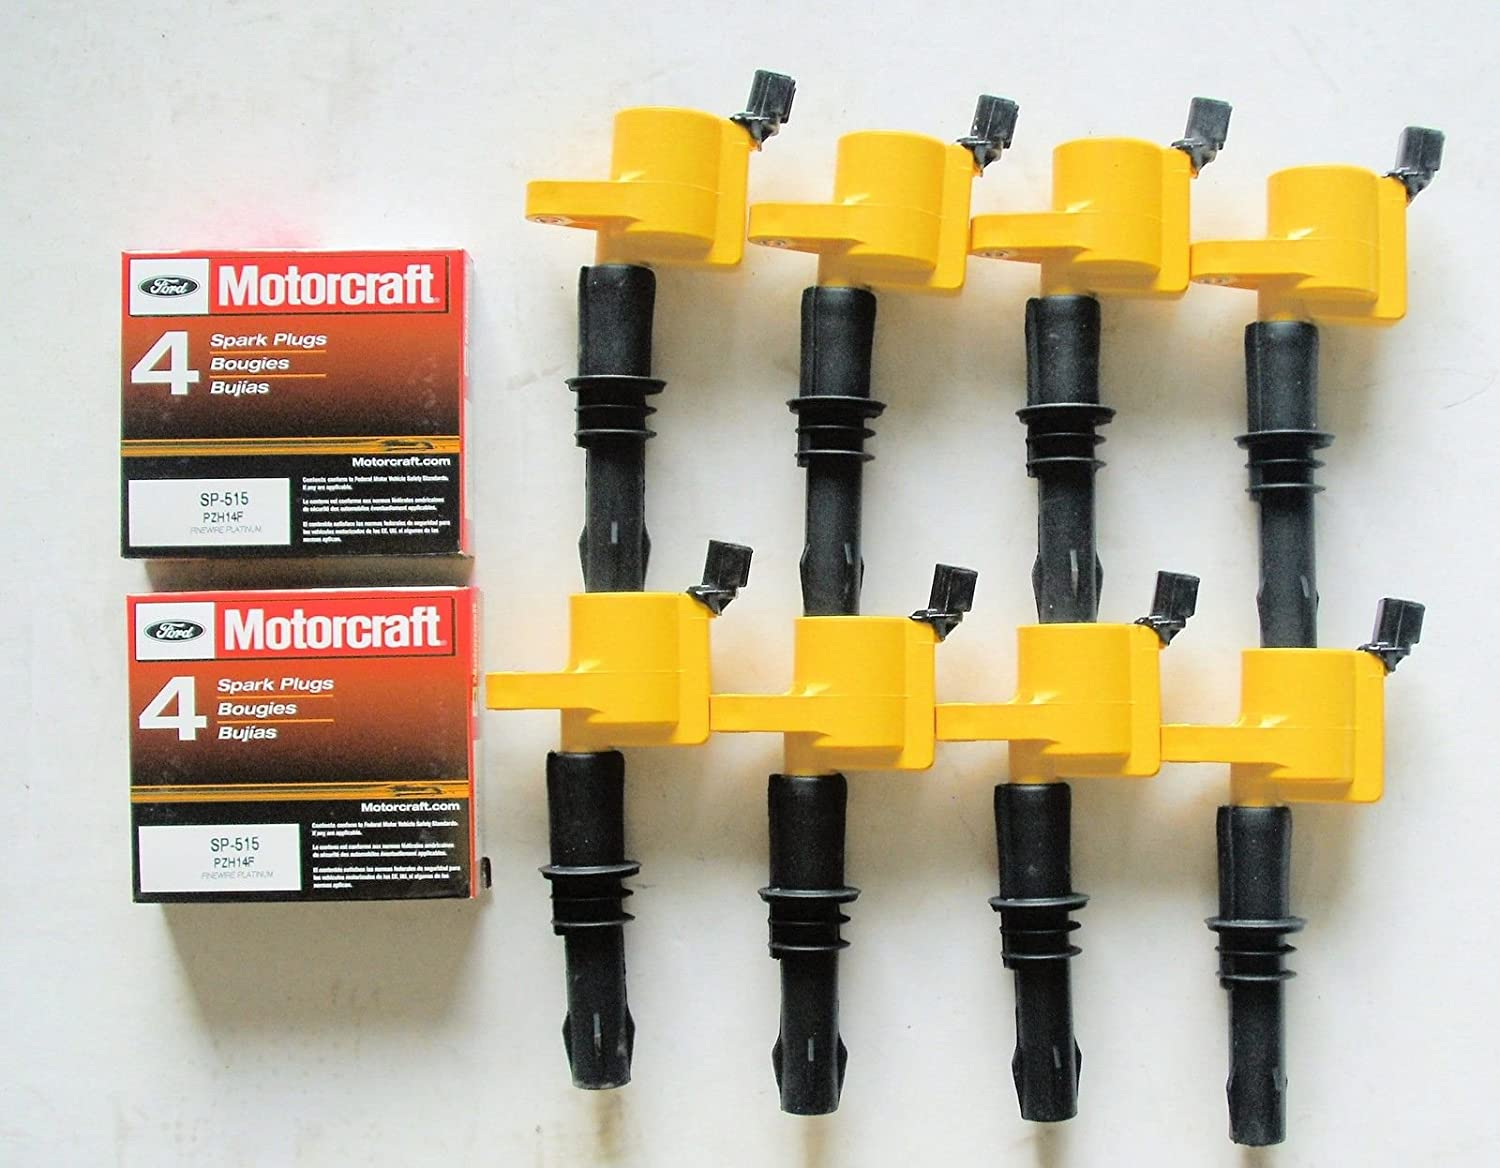 Amazon.com: 8x Ignition Coil Heavy Duty 511 Yellow +8 Motorcraft Plug Sp515: Automotive